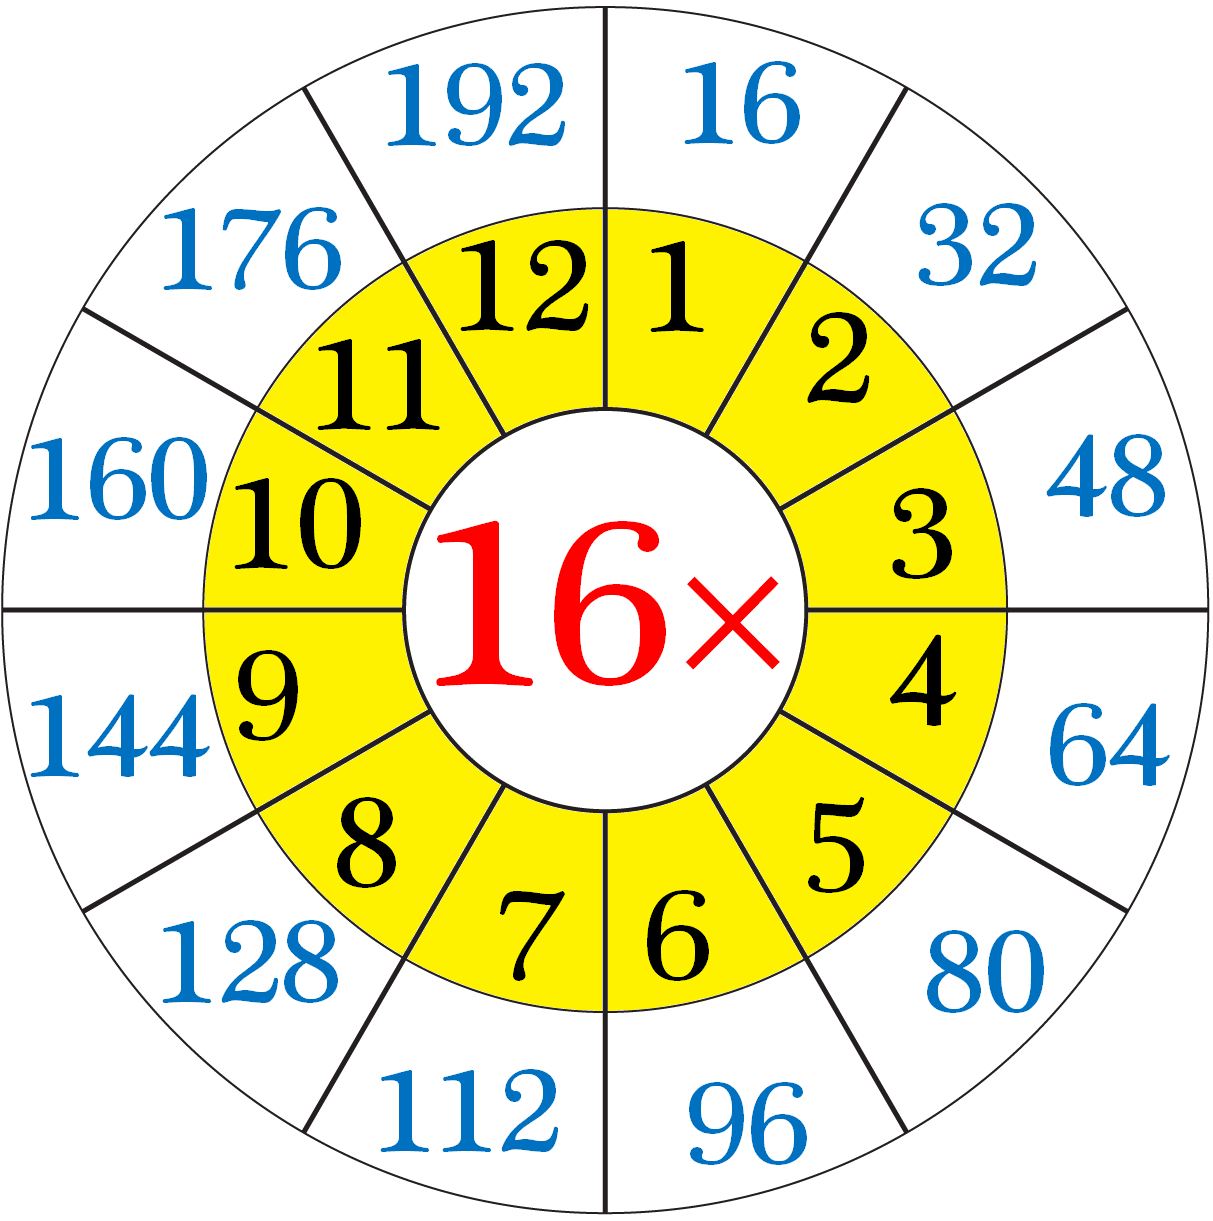 Multiplication Table Of 16